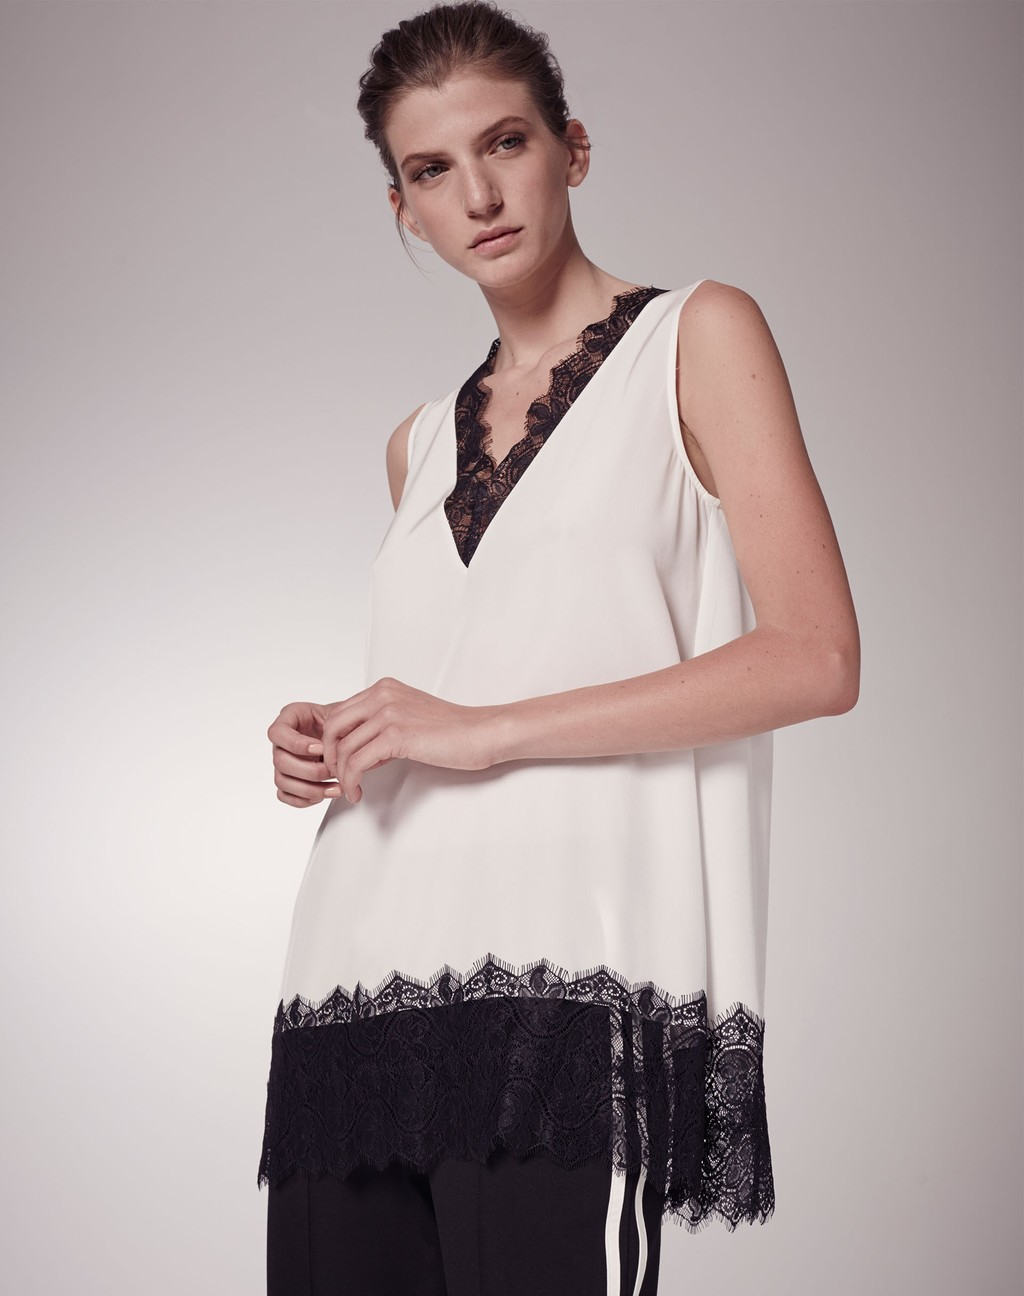 Lace Trim Silk Tunic - neckline: v-neck; pattern: plain; sleeve style: sleeveless; length: below the bottom; style: tunic; predominant colour: white; secondary colour: black; occasions: casual; fibres: silk - 100%; fit: loose; sleeve length: sleeveless; texture group: silky - light; pattern type: fabric; embellishment: lace; multicoloured: multicoloured; season: s/s 2016; wardrobe: highlight